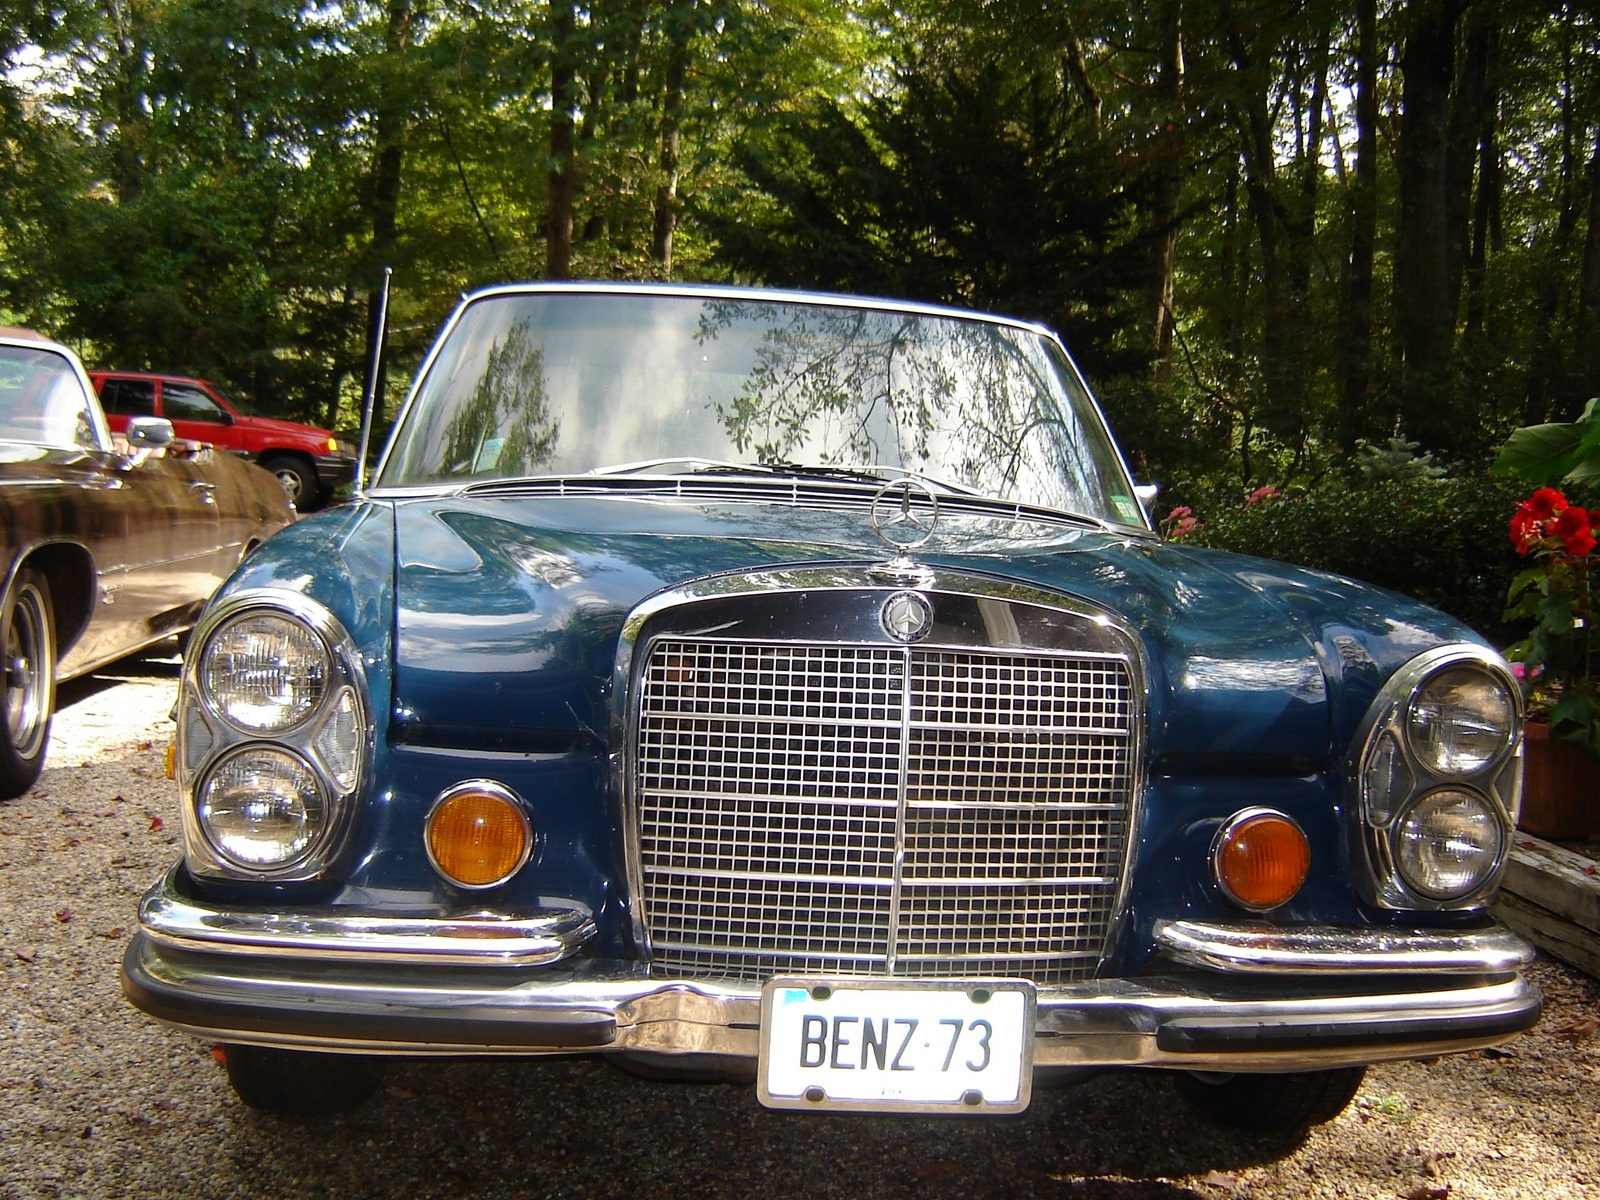 Used mercedes benz 280 for sale cargurus for Used mercedes benz for sale in md